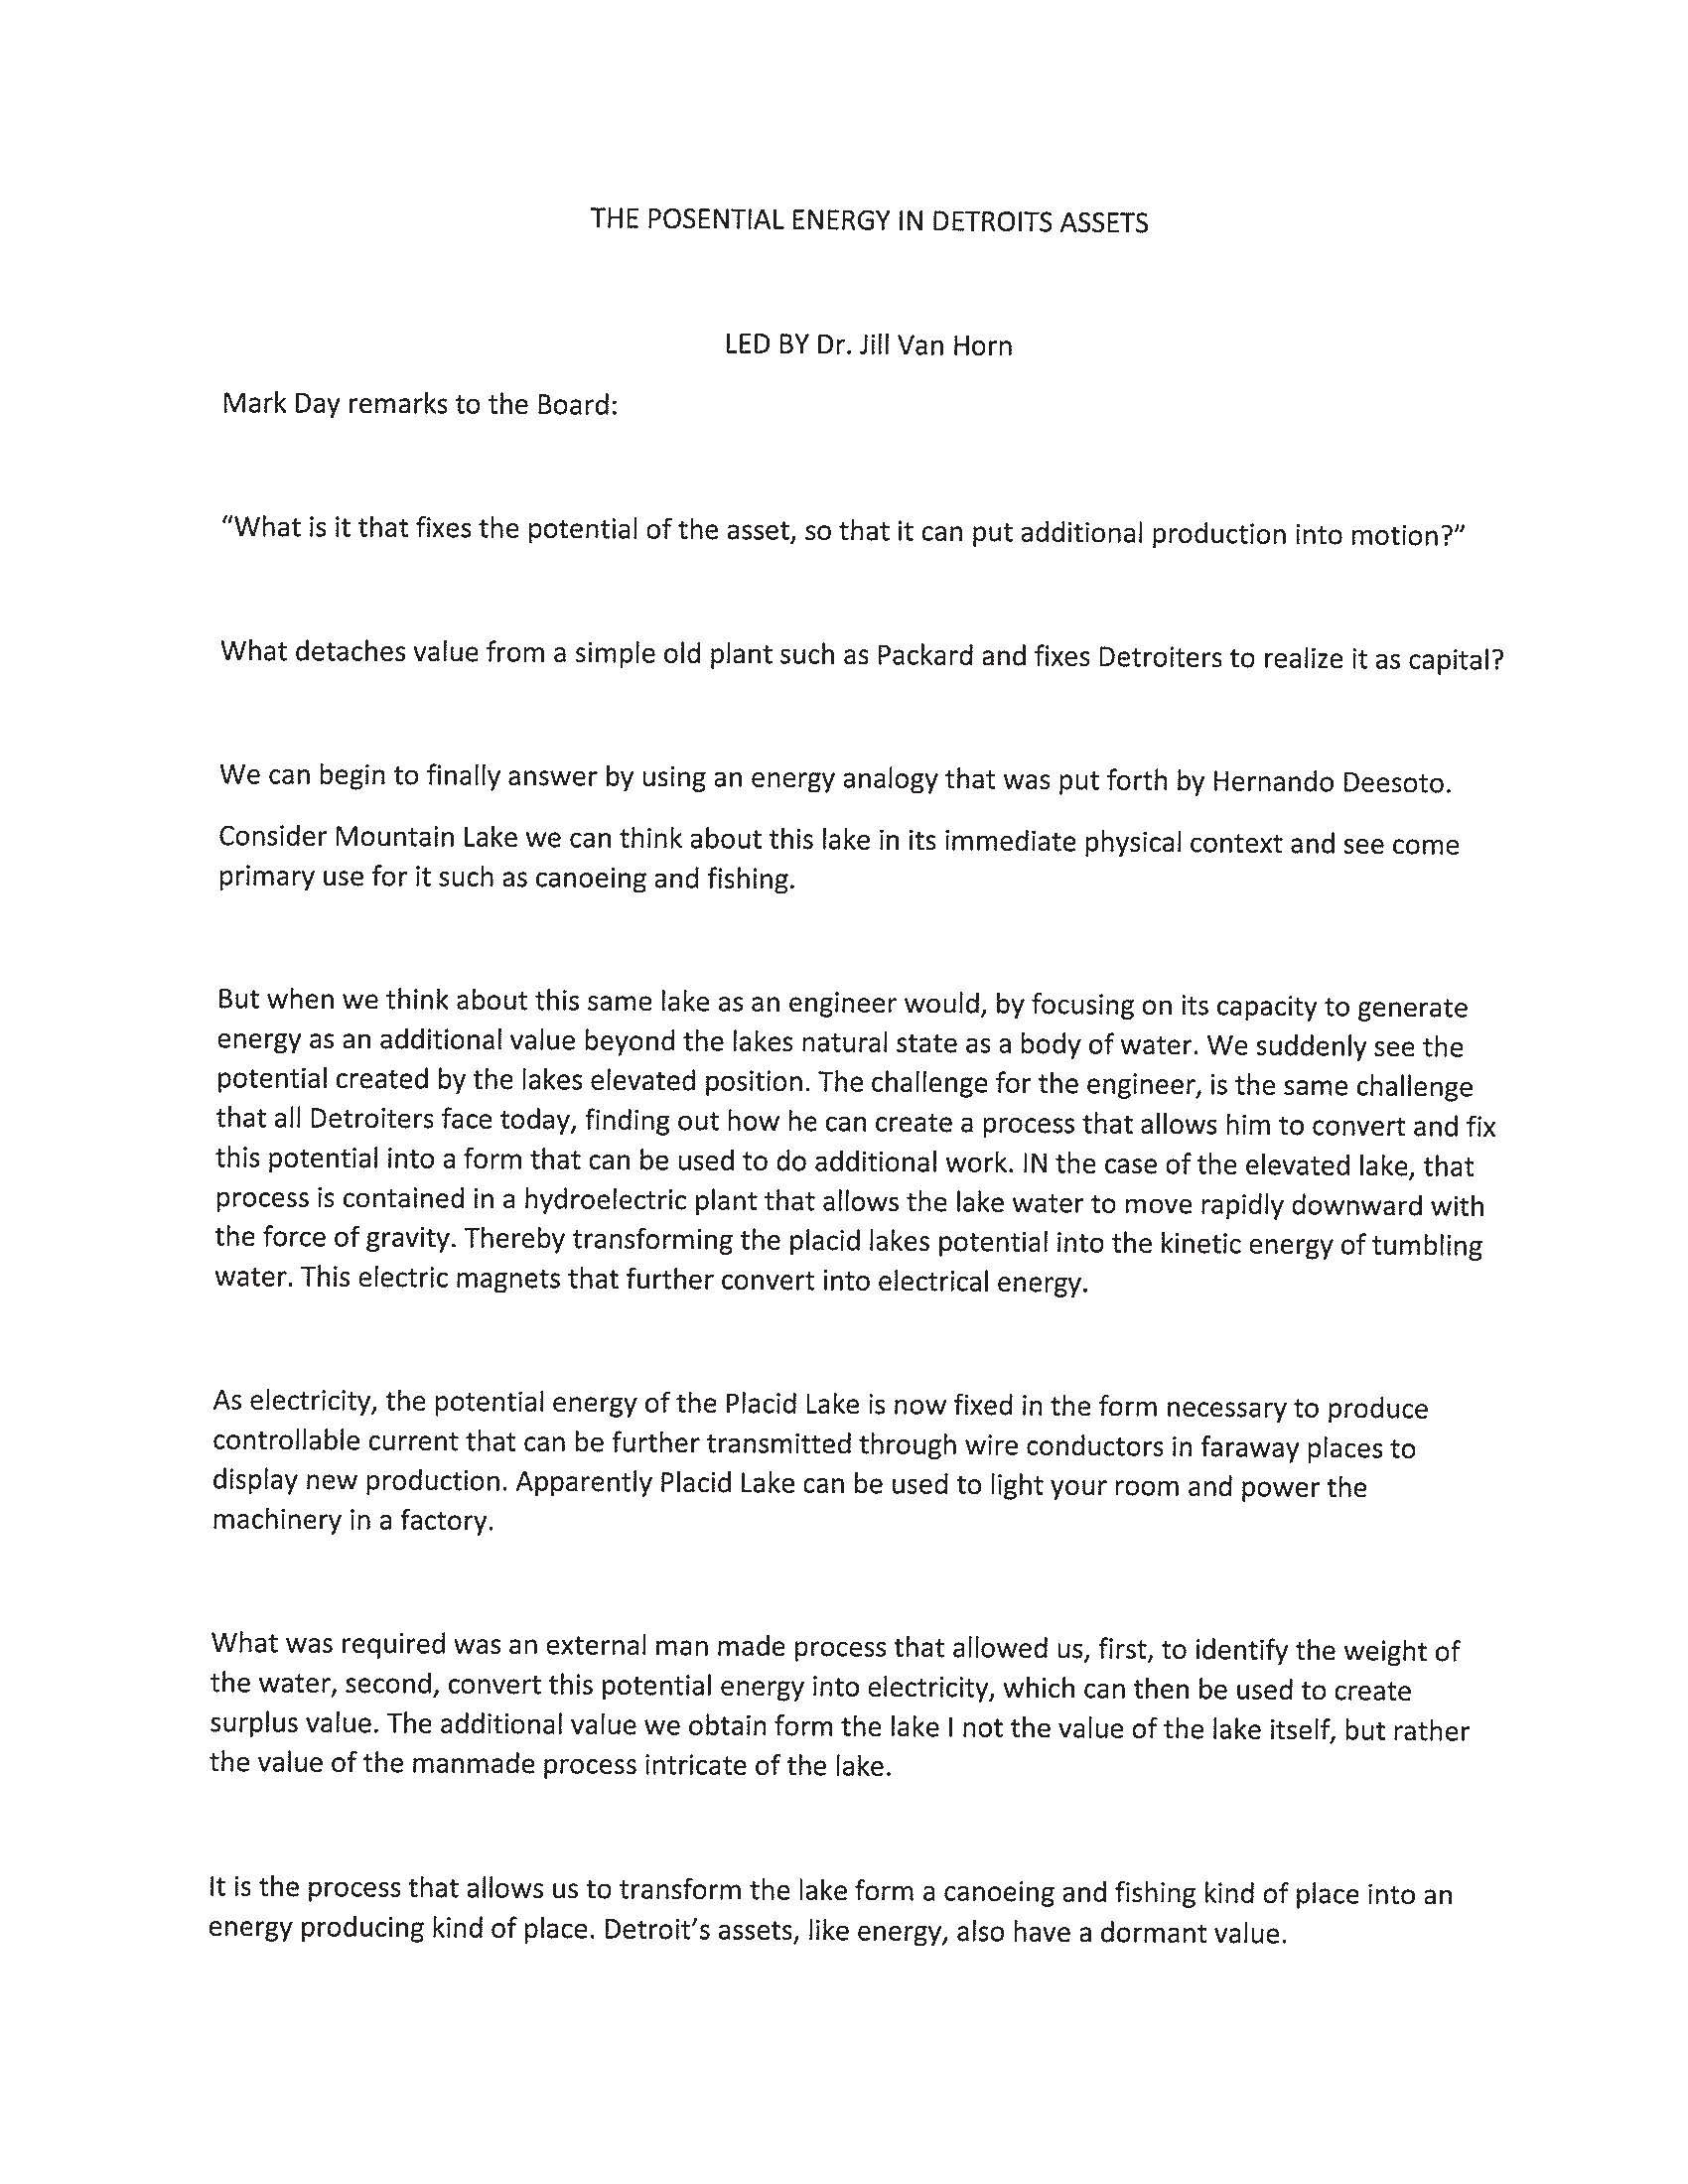 A Longer Version Of The Packard Plant Purchase News Release This Is Page 1 News Release Writing Public Relations